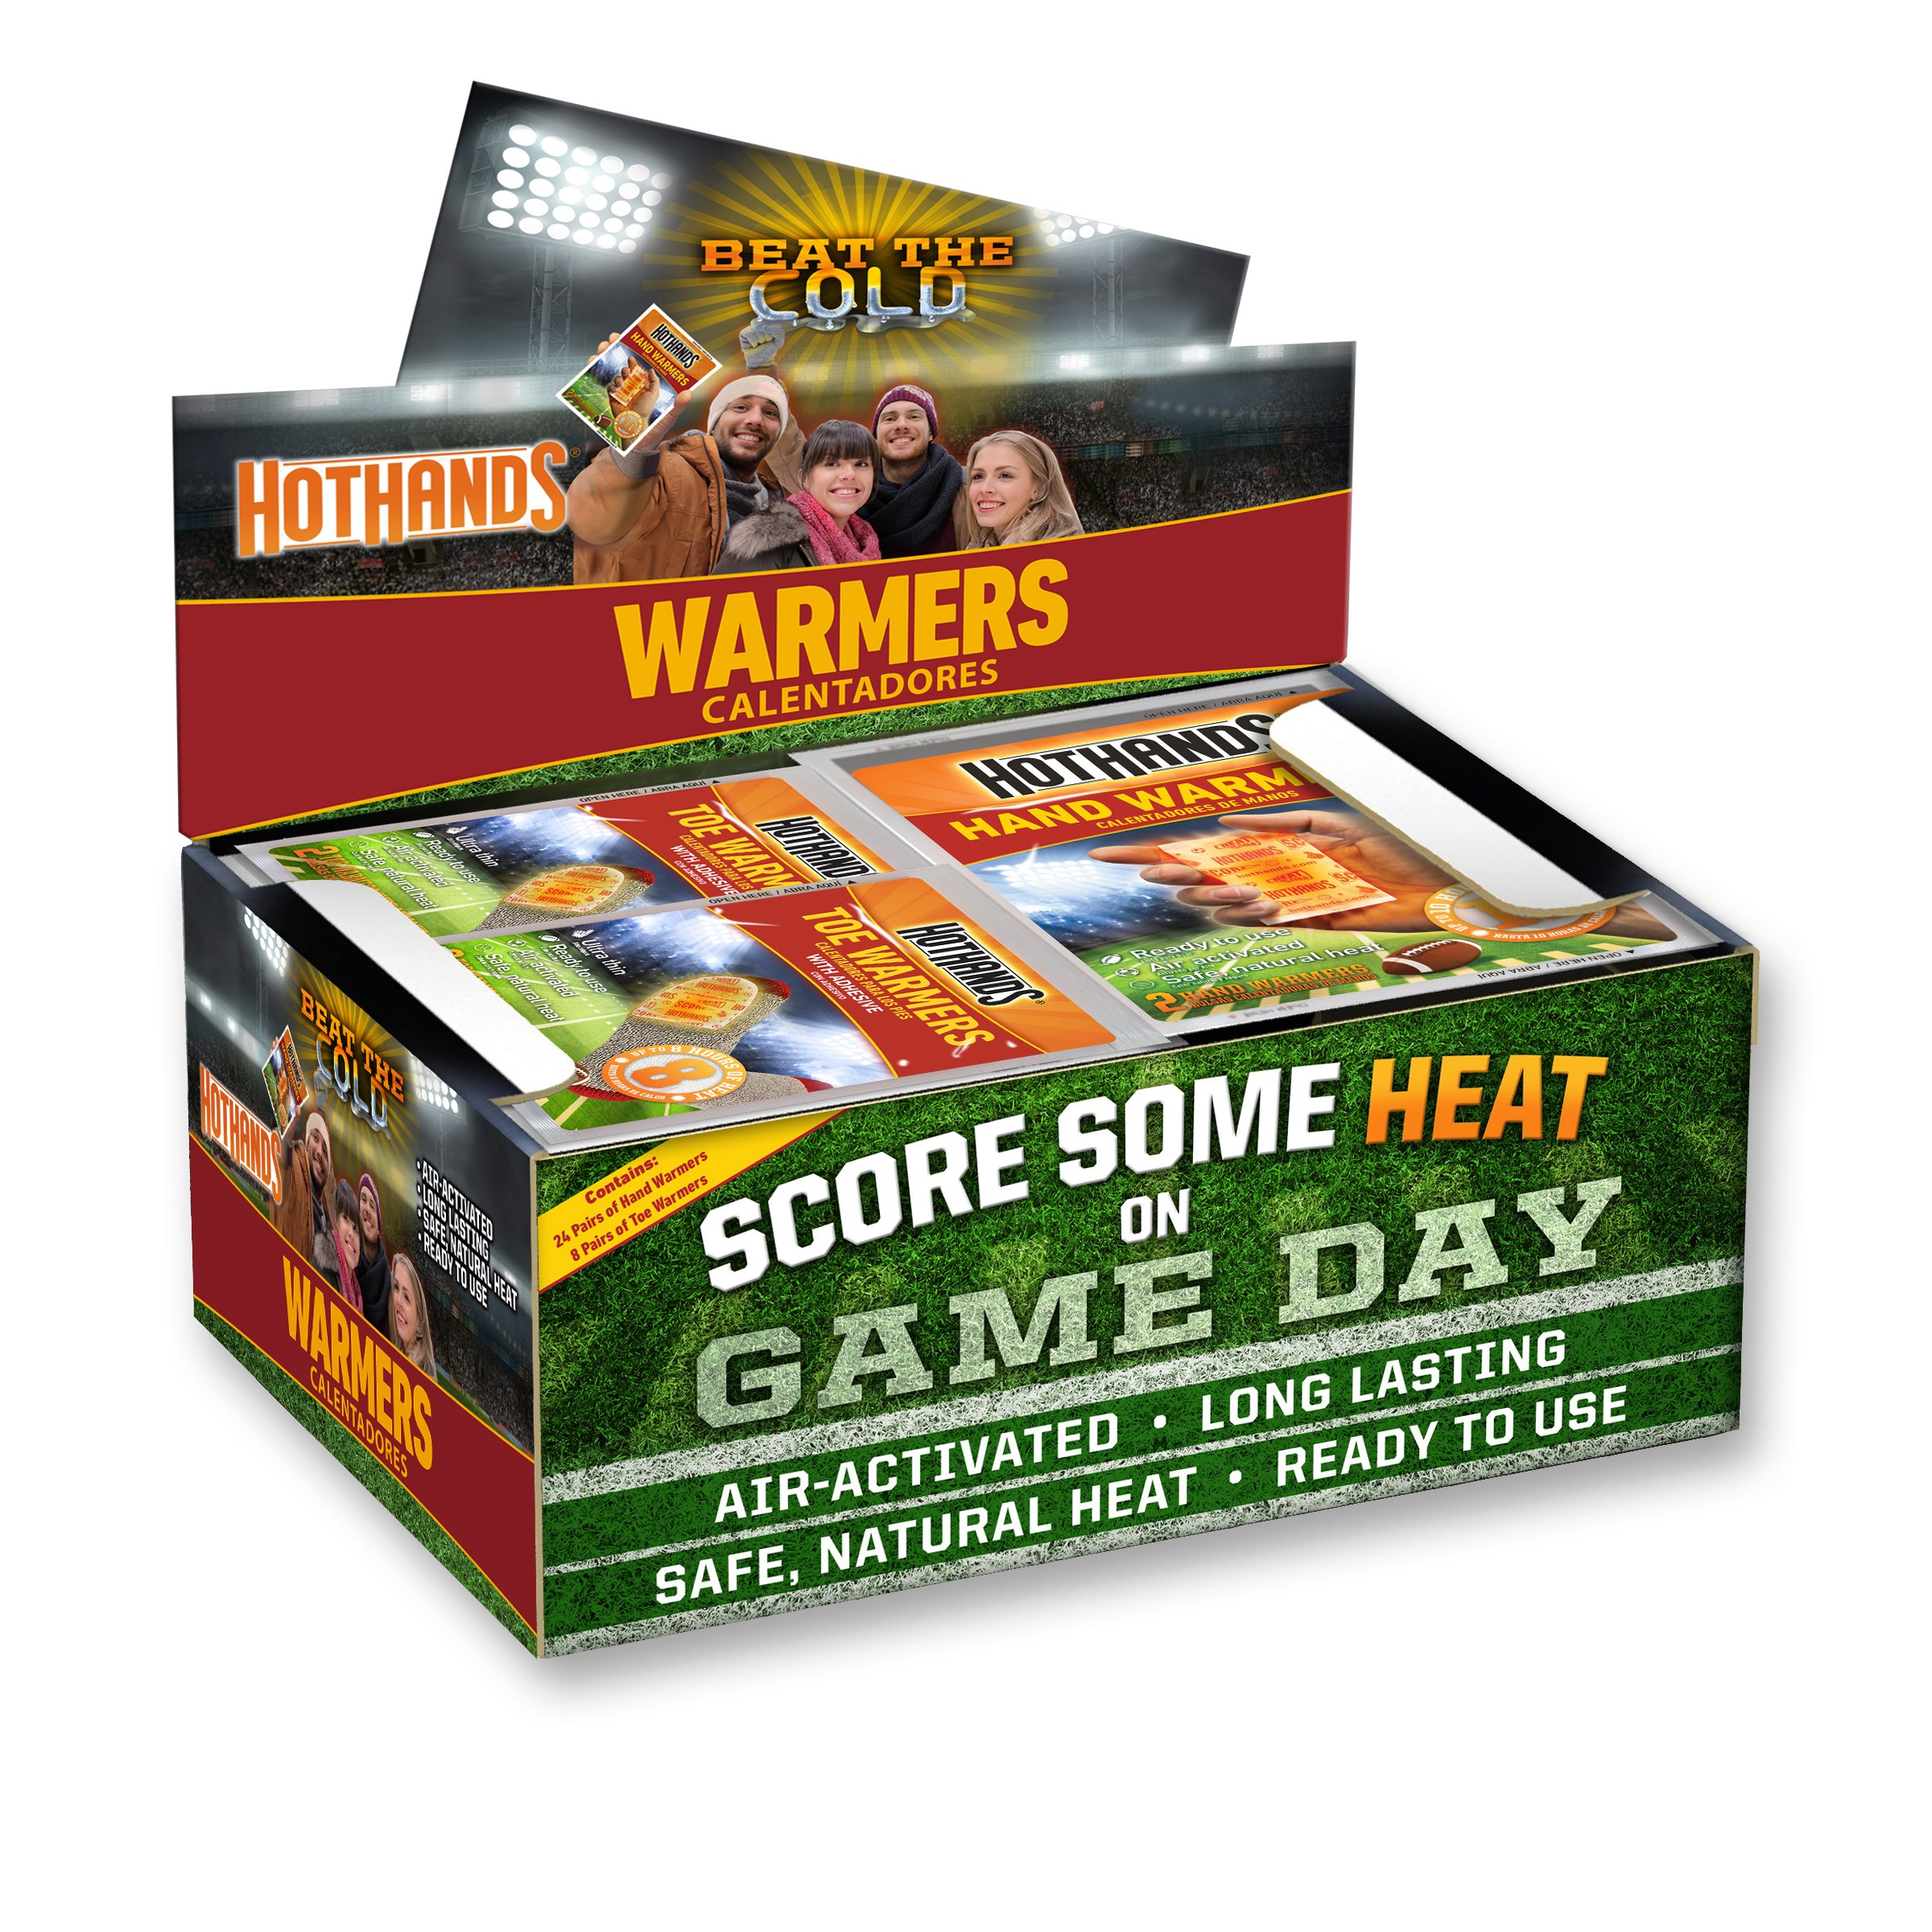 HotHands Game Day Hand & Toe Warmers - Long Lasting Safe Natural Odorless Air Activated Warmers - 24 Pair OF Hand Warmers & 8 Pair Of Toe Warmers by HotHands